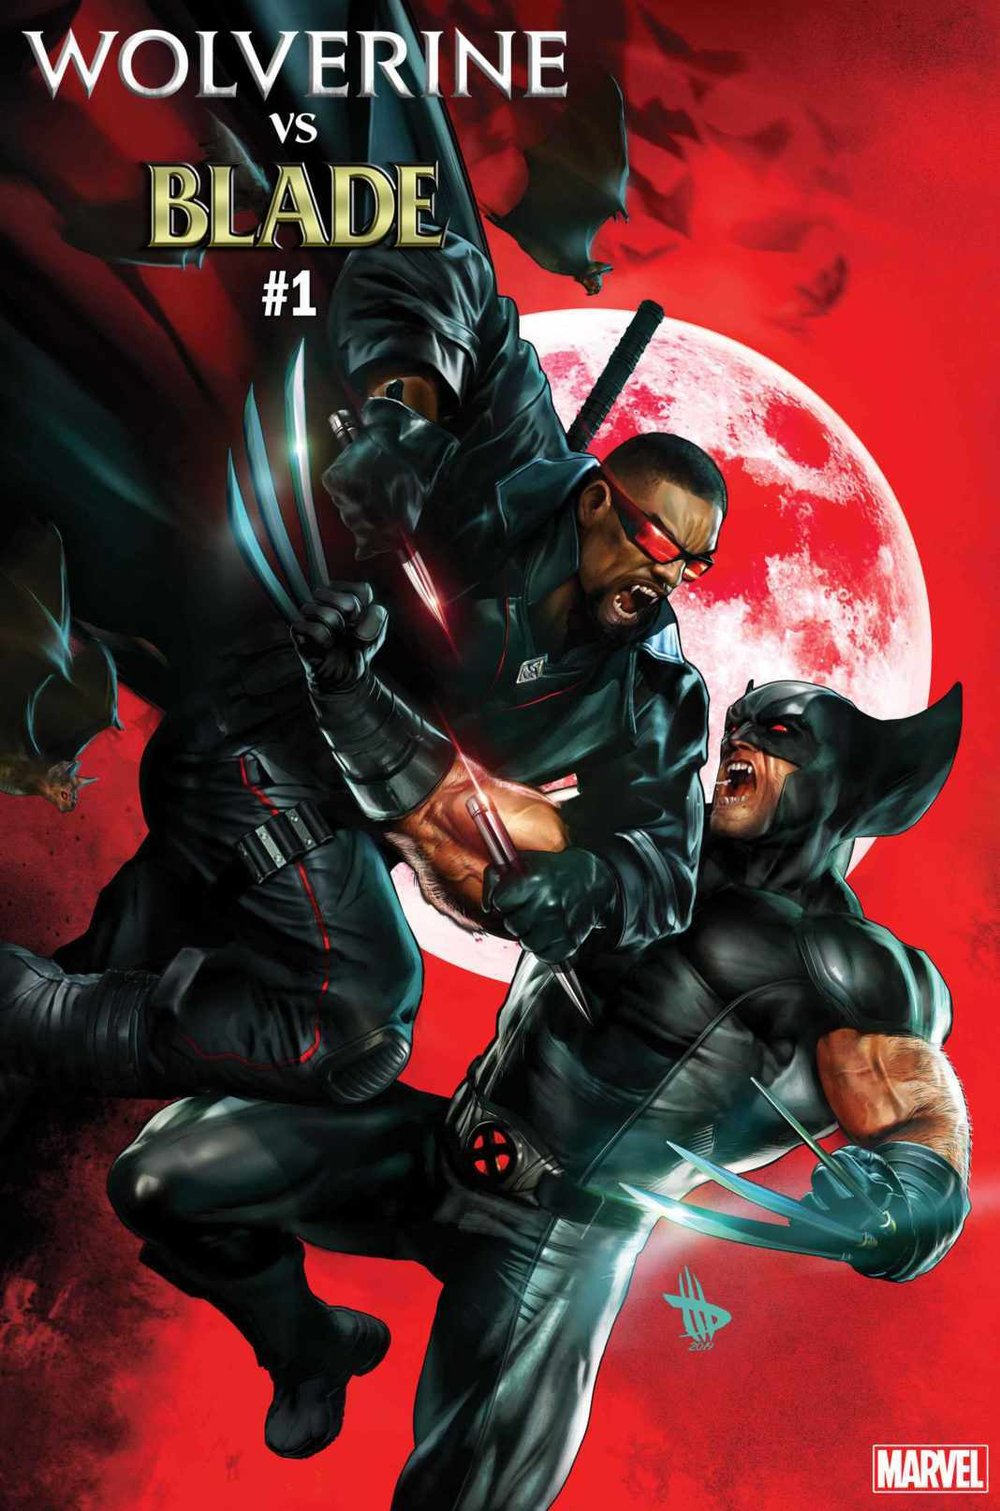 marvel-comics-announces-wolverine-vs-blade-here-are-the-details-and-cover-art